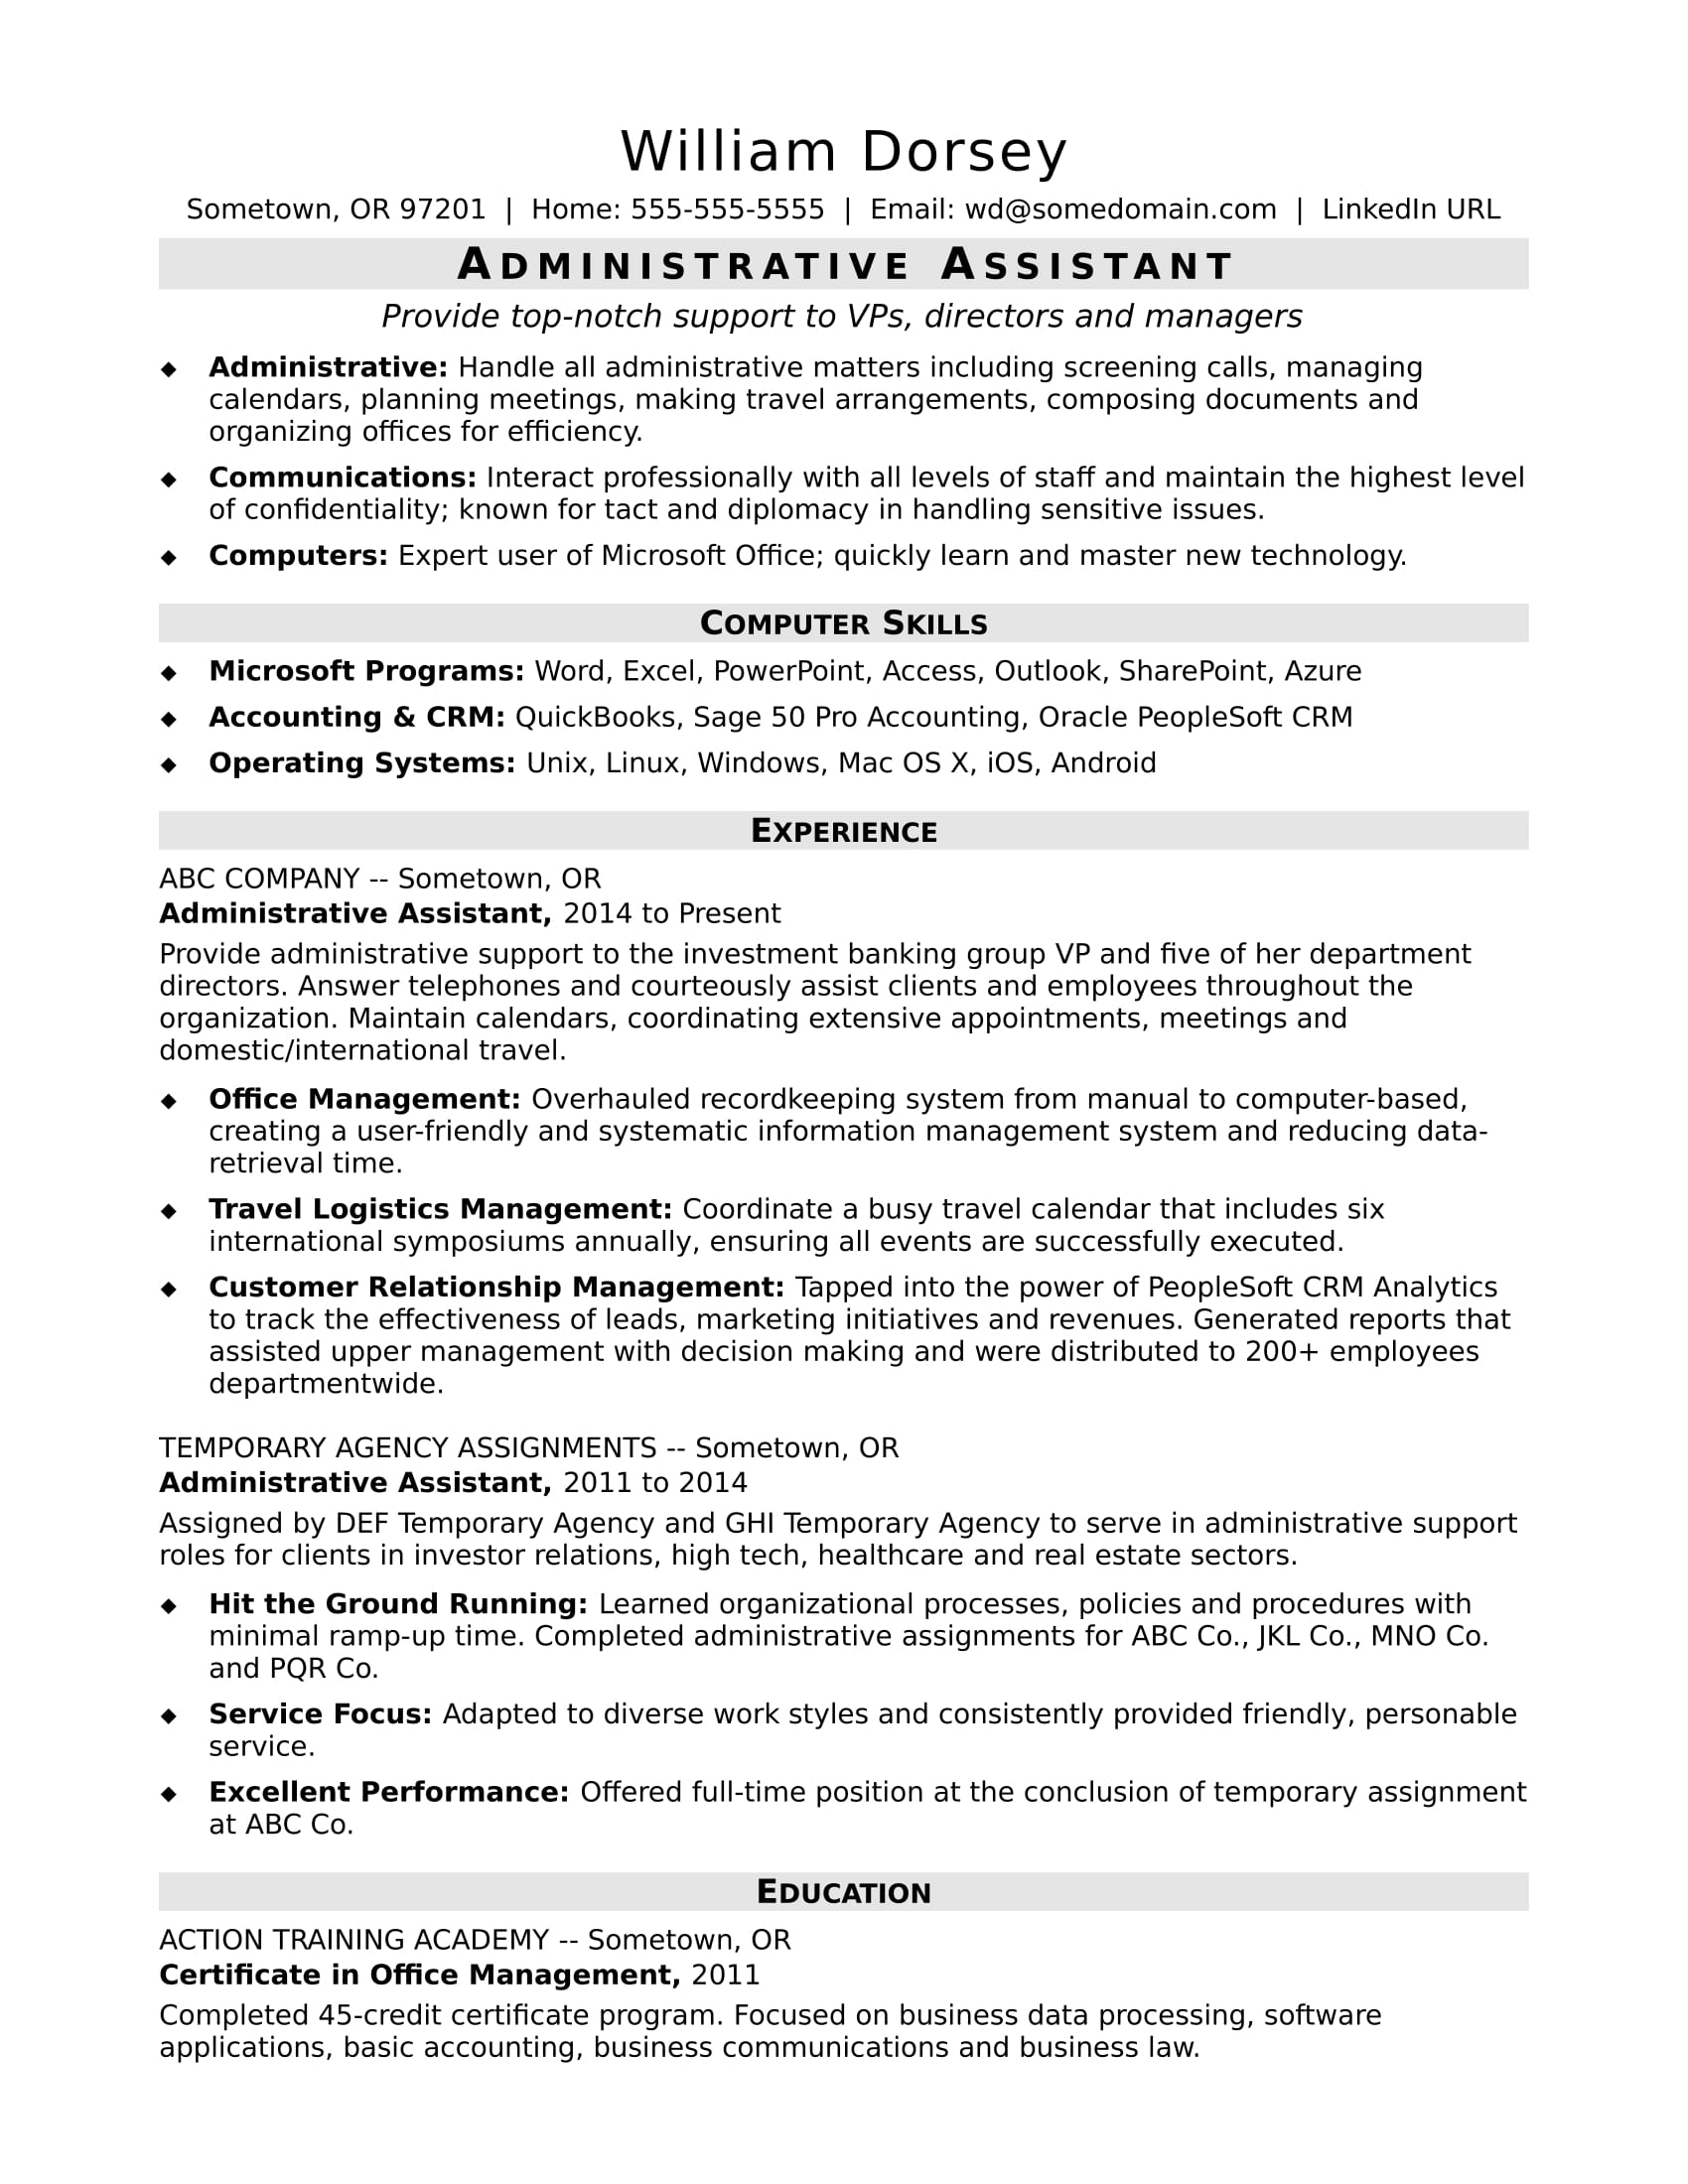 sample resume for a midlevel administrative assistant - Administrative Assistant Resume Sample